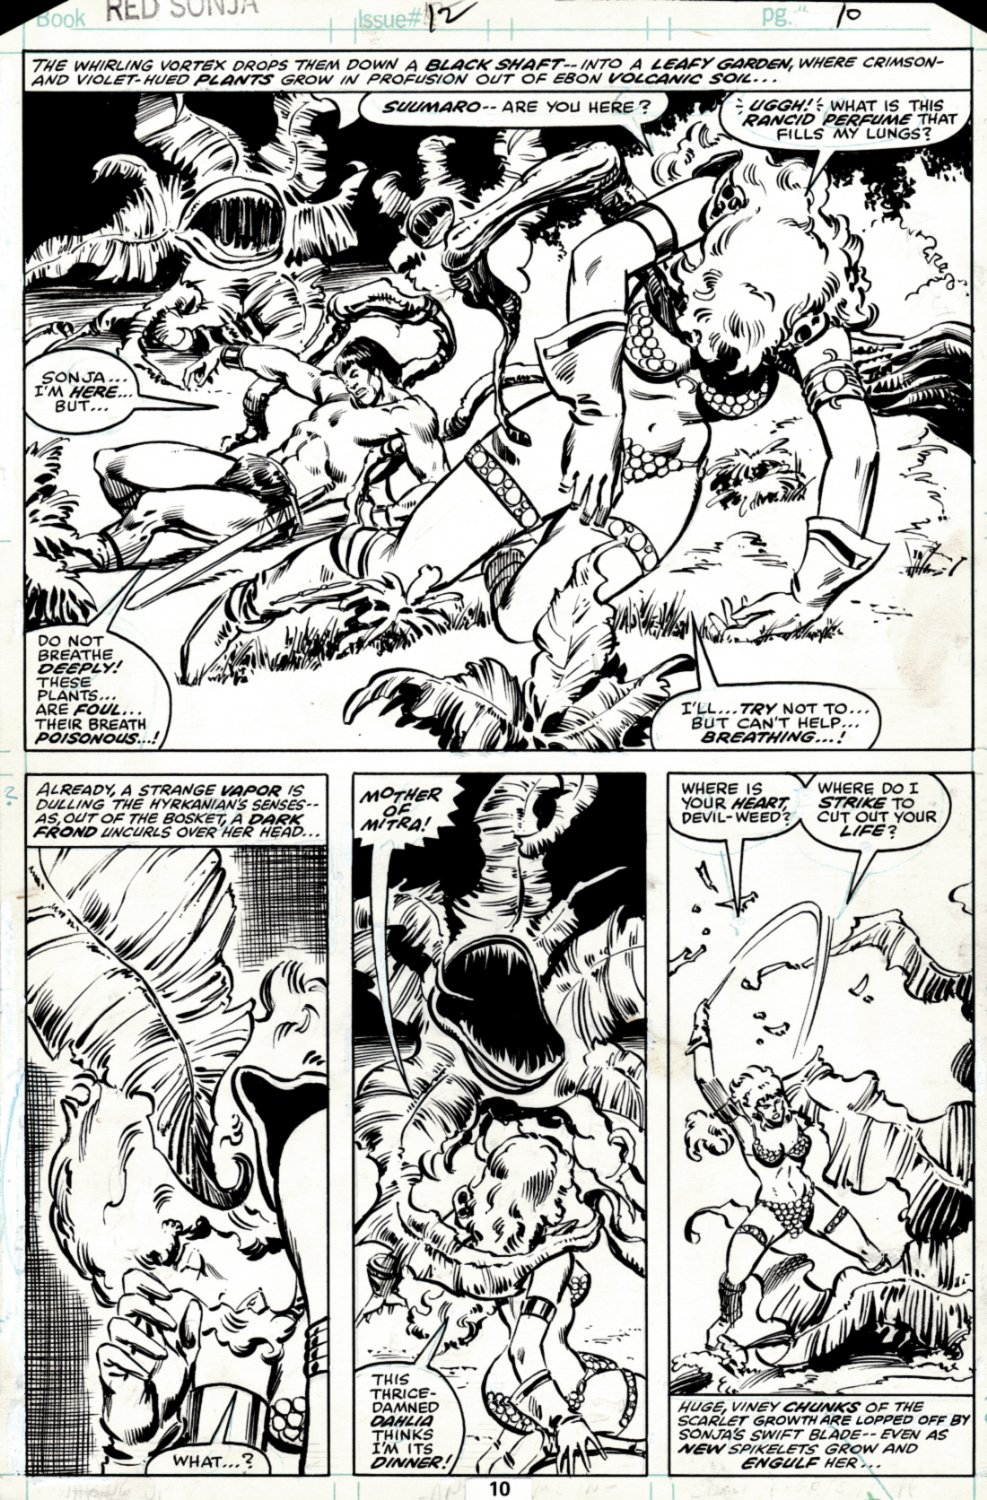 Red Sonja #12 p 10 SOLD LIVE ON 'DUELING DEALERS EPISODE #36 PODCAST ON 9-15-2021 (RE-WATCH THIS FUNNY ART SELLING SHOW HERE)